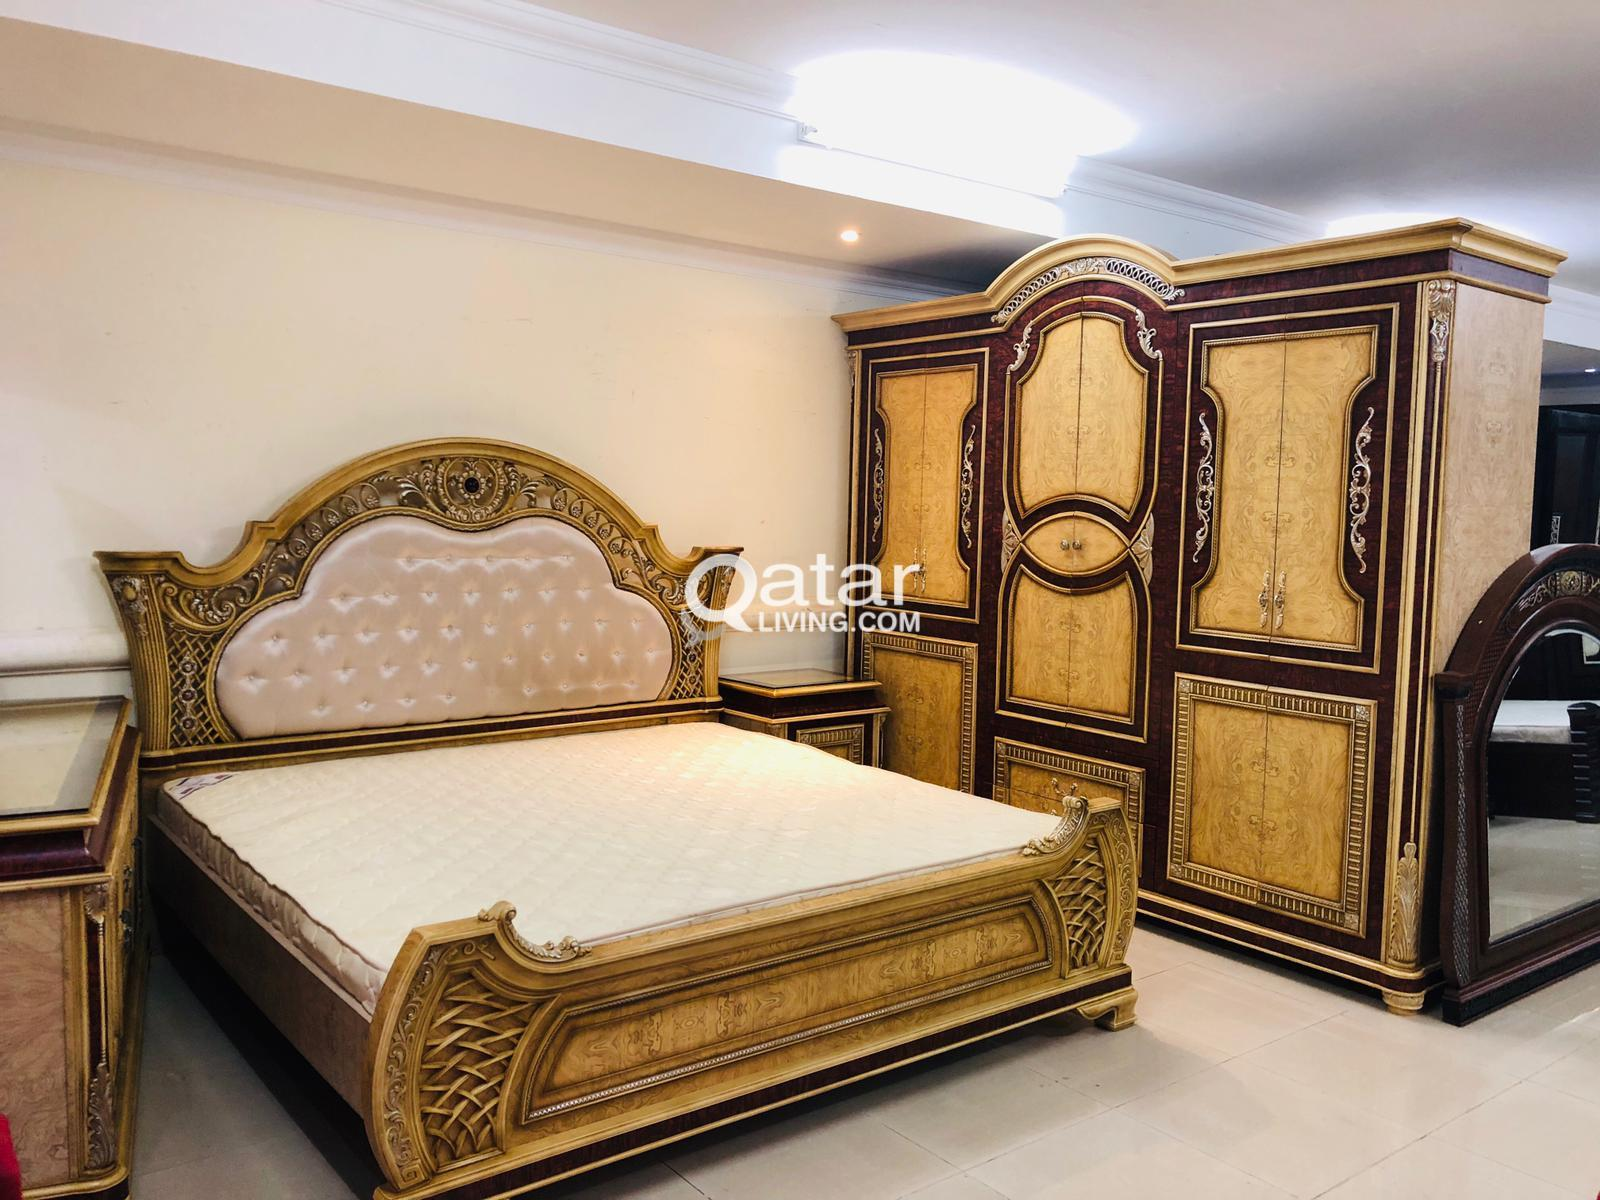 For sell used villa furniture Excellent condition